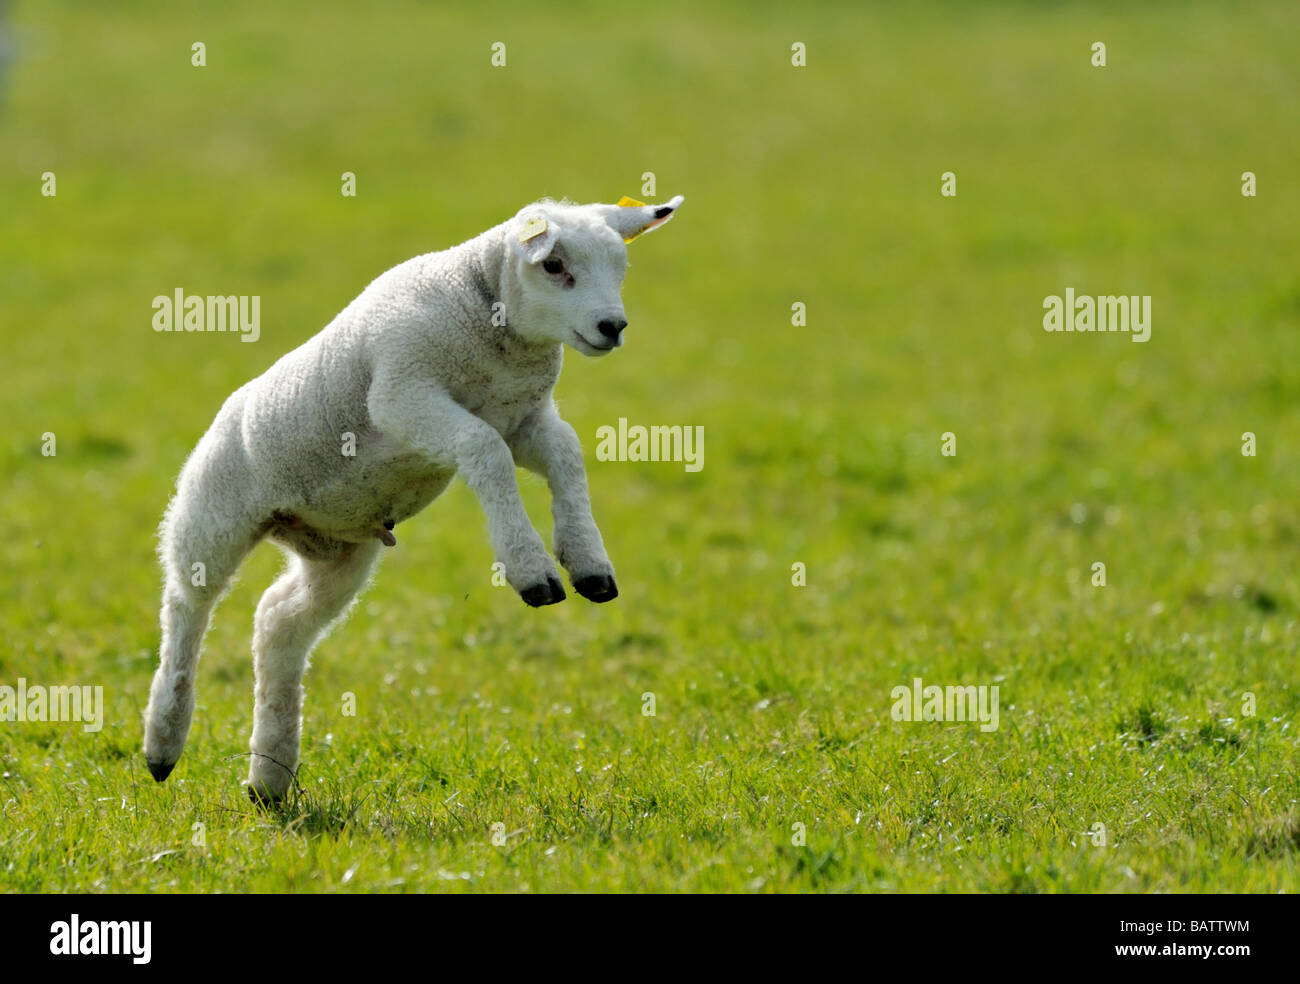 Cute Lamb Running And Jumping In Spring The Netherlands